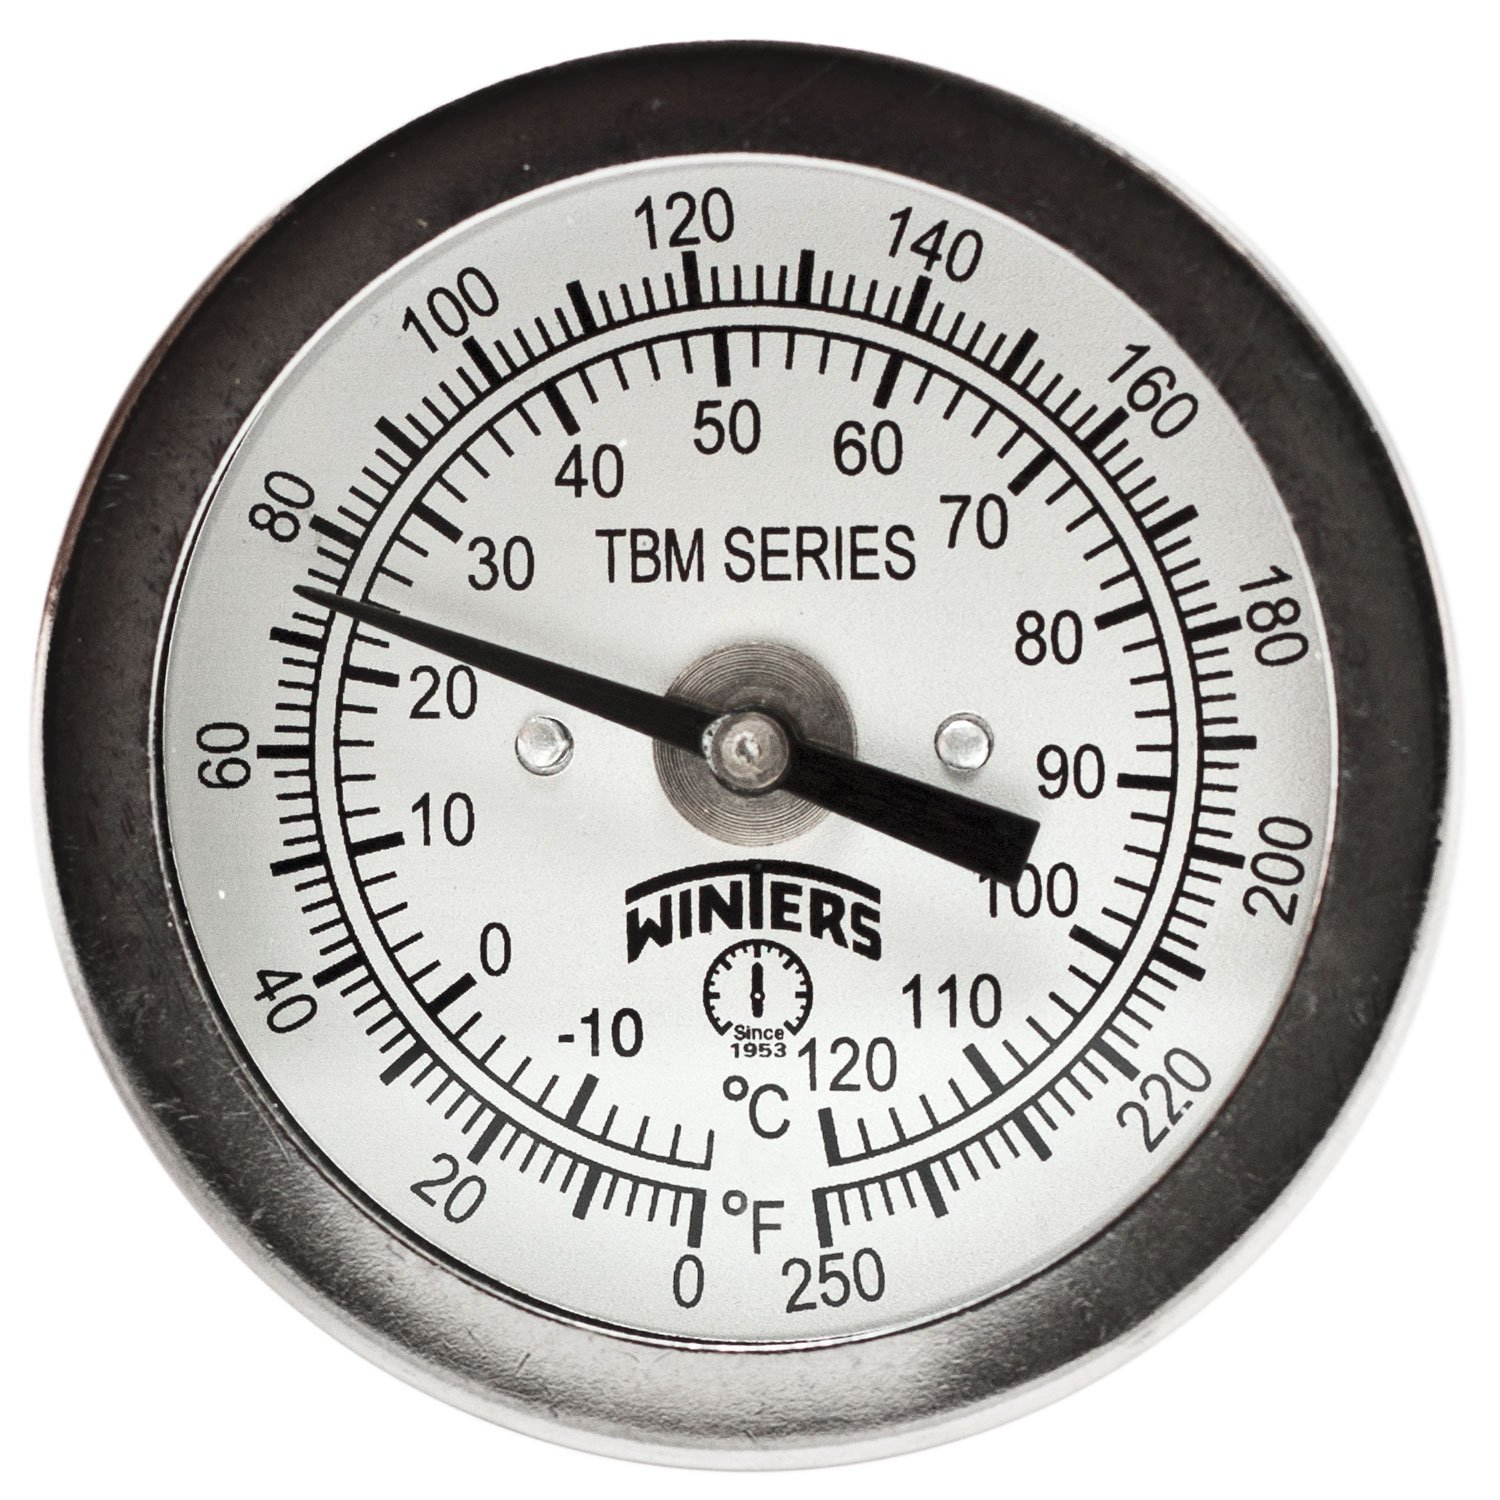 2 Dial 0-250 F//C Range 4 Stem 1//4 NPT Fixed Center Back Mount Connection 2 Dial TBM20040B8 4 Stem Winters TBM Series Stainless Steel 304 Dual Scale Bi-Metal Thermometer 1//4 NPT Fixed Center Back Mount Connection